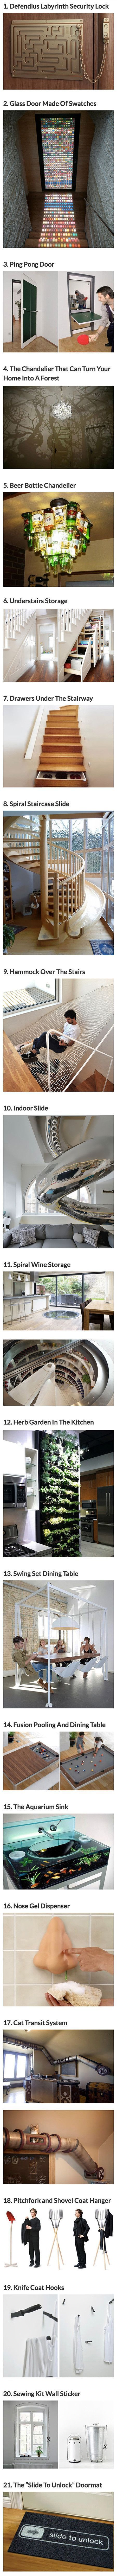 Follow me on Pinterest SuperMom5113 Check out my IG for your pinning inspiration passionqueen1351 Dream Home Pinterest